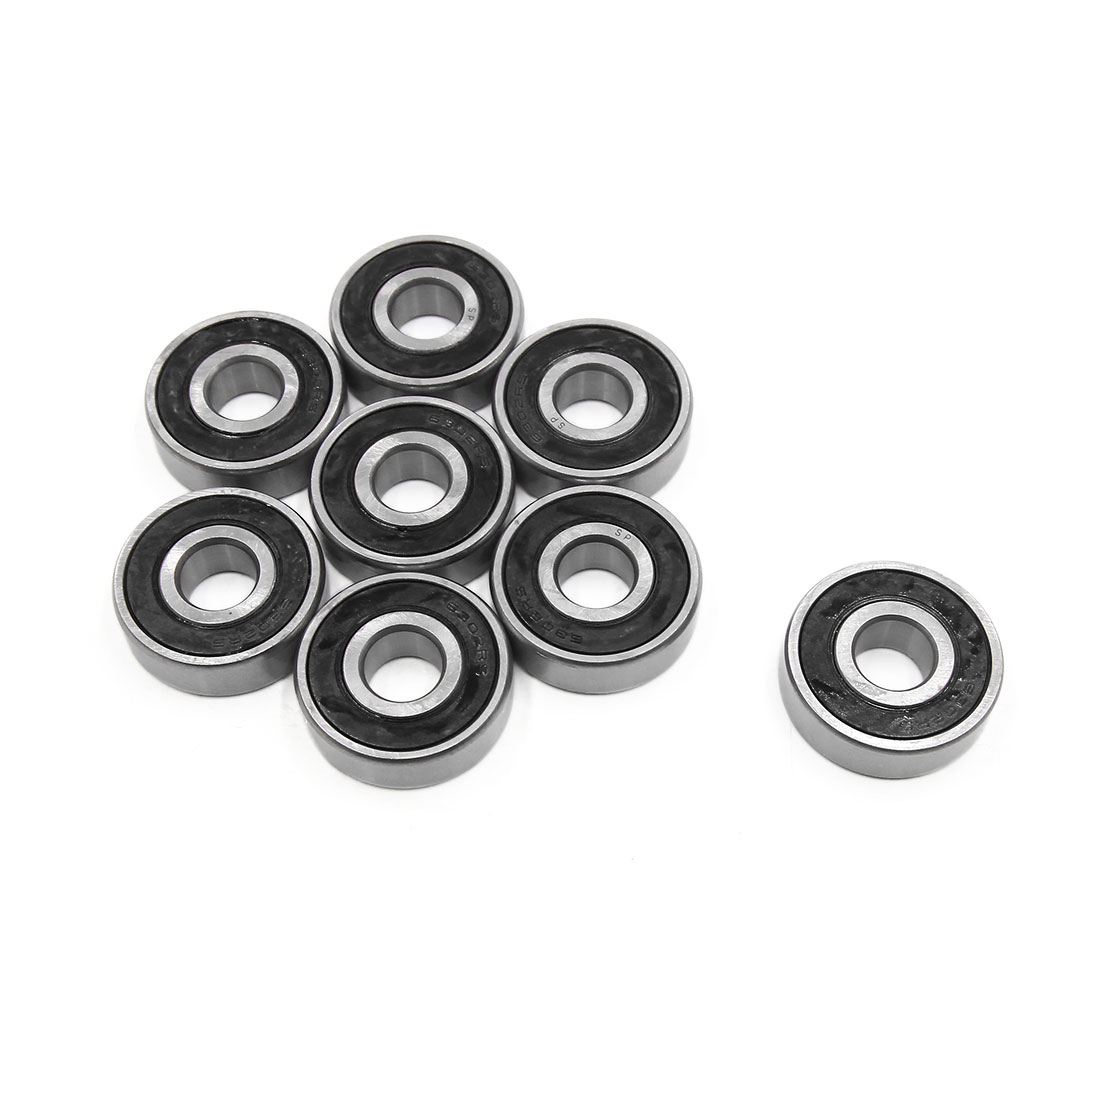 8pcs 6302-2RS Scooter Motorcycle Sealed Deep Groove Ball Bearing 42 x 15 x 13mm